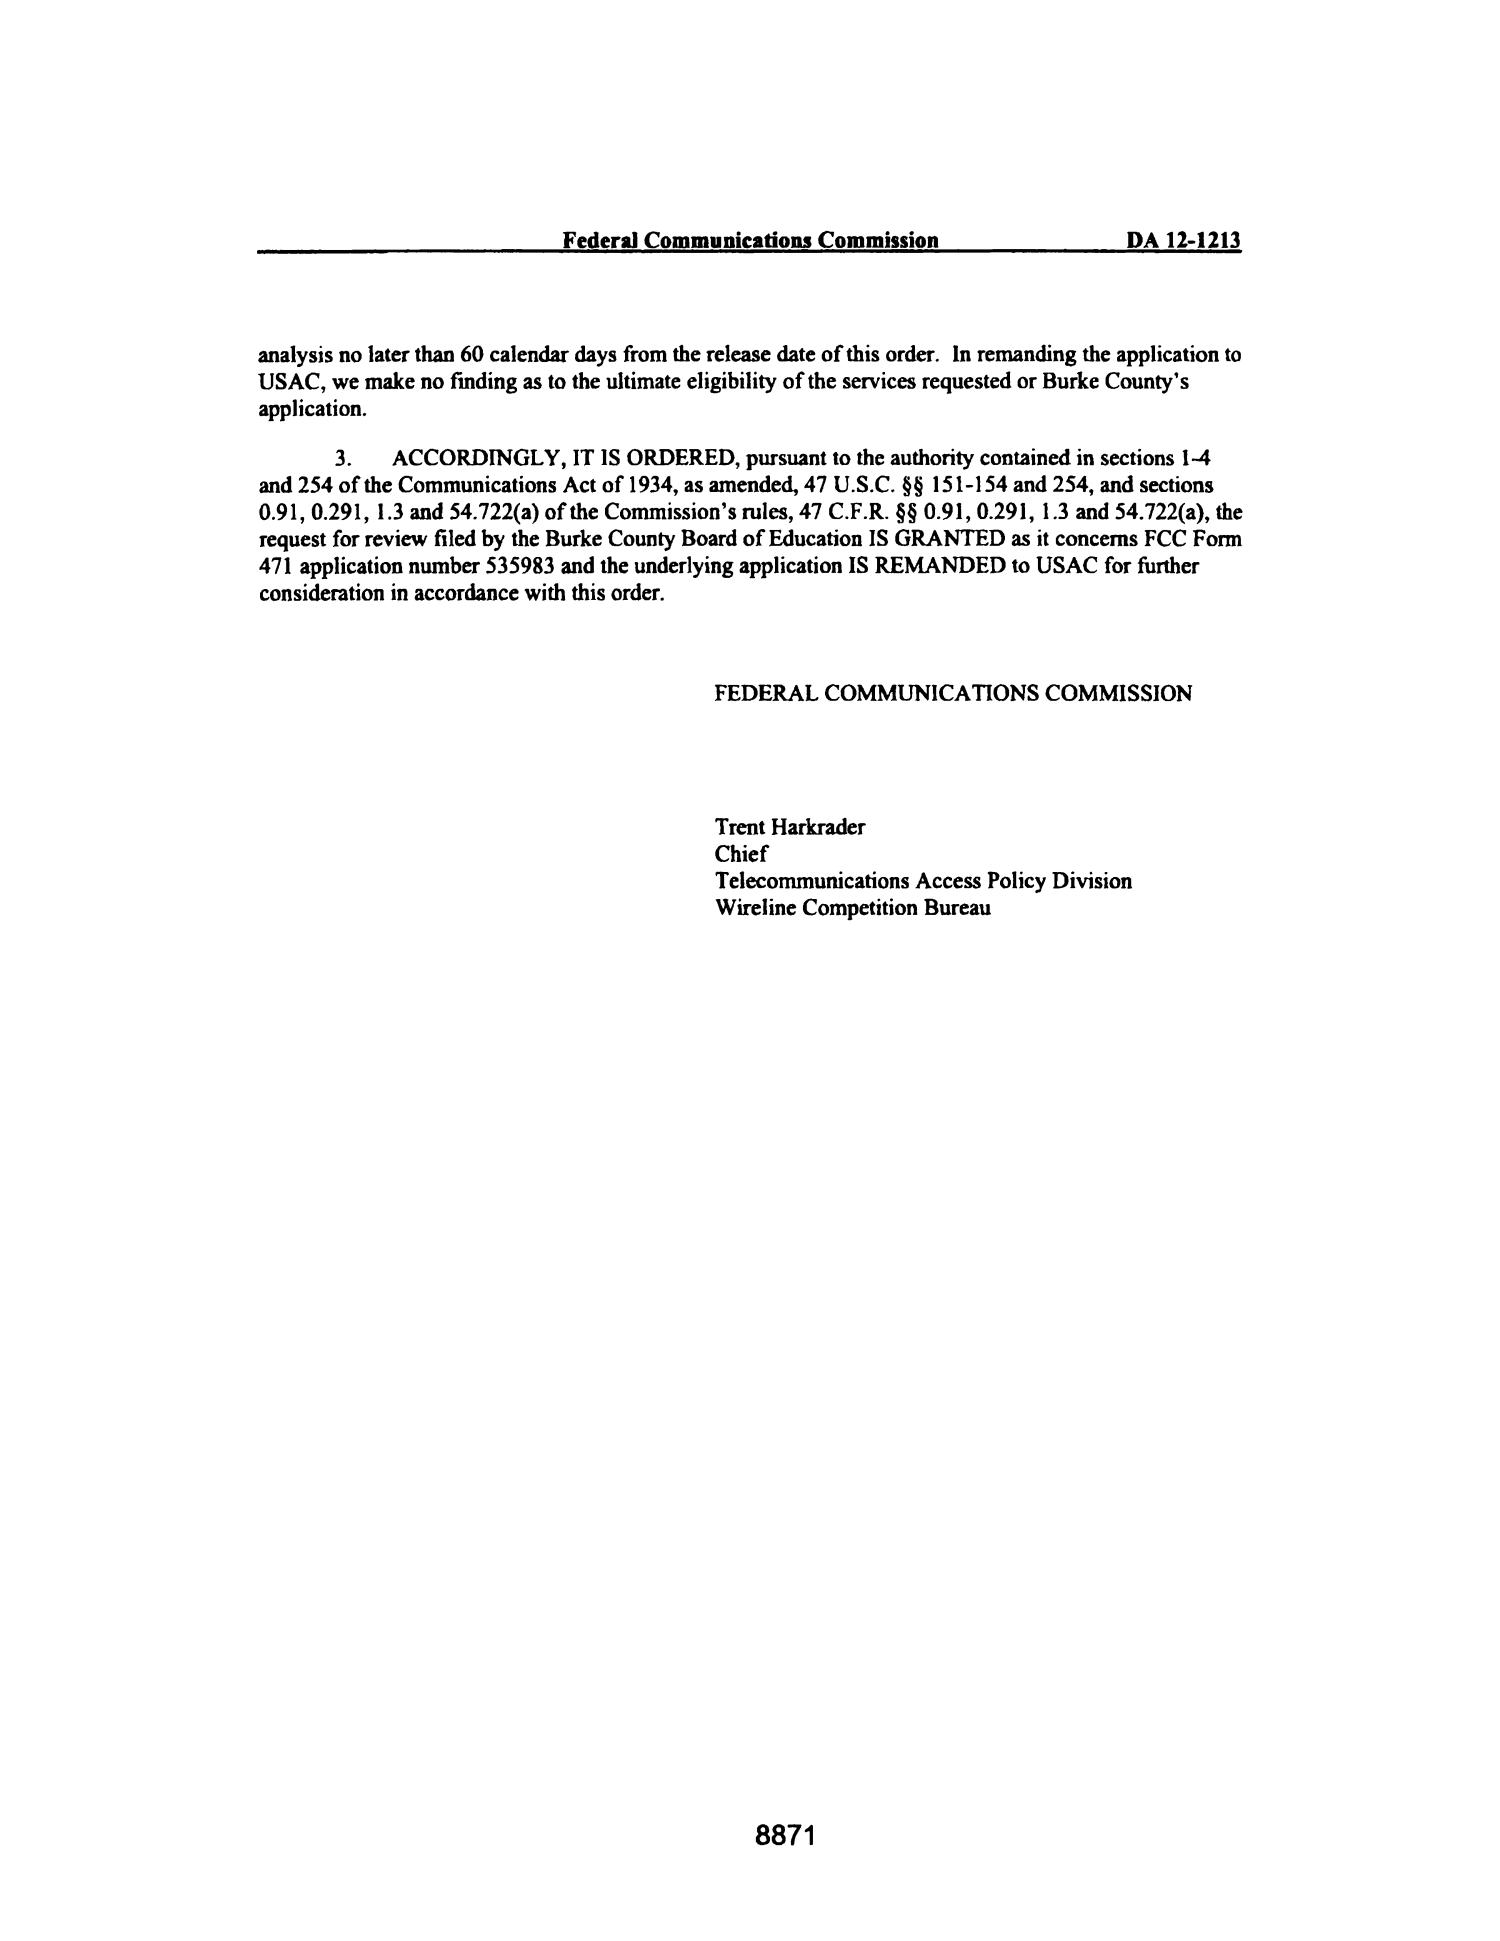 FCC Record, Volume 27, No. 11, Pages 8850 to 9847, July 30 - August 17, 2012                                                                                                      8871